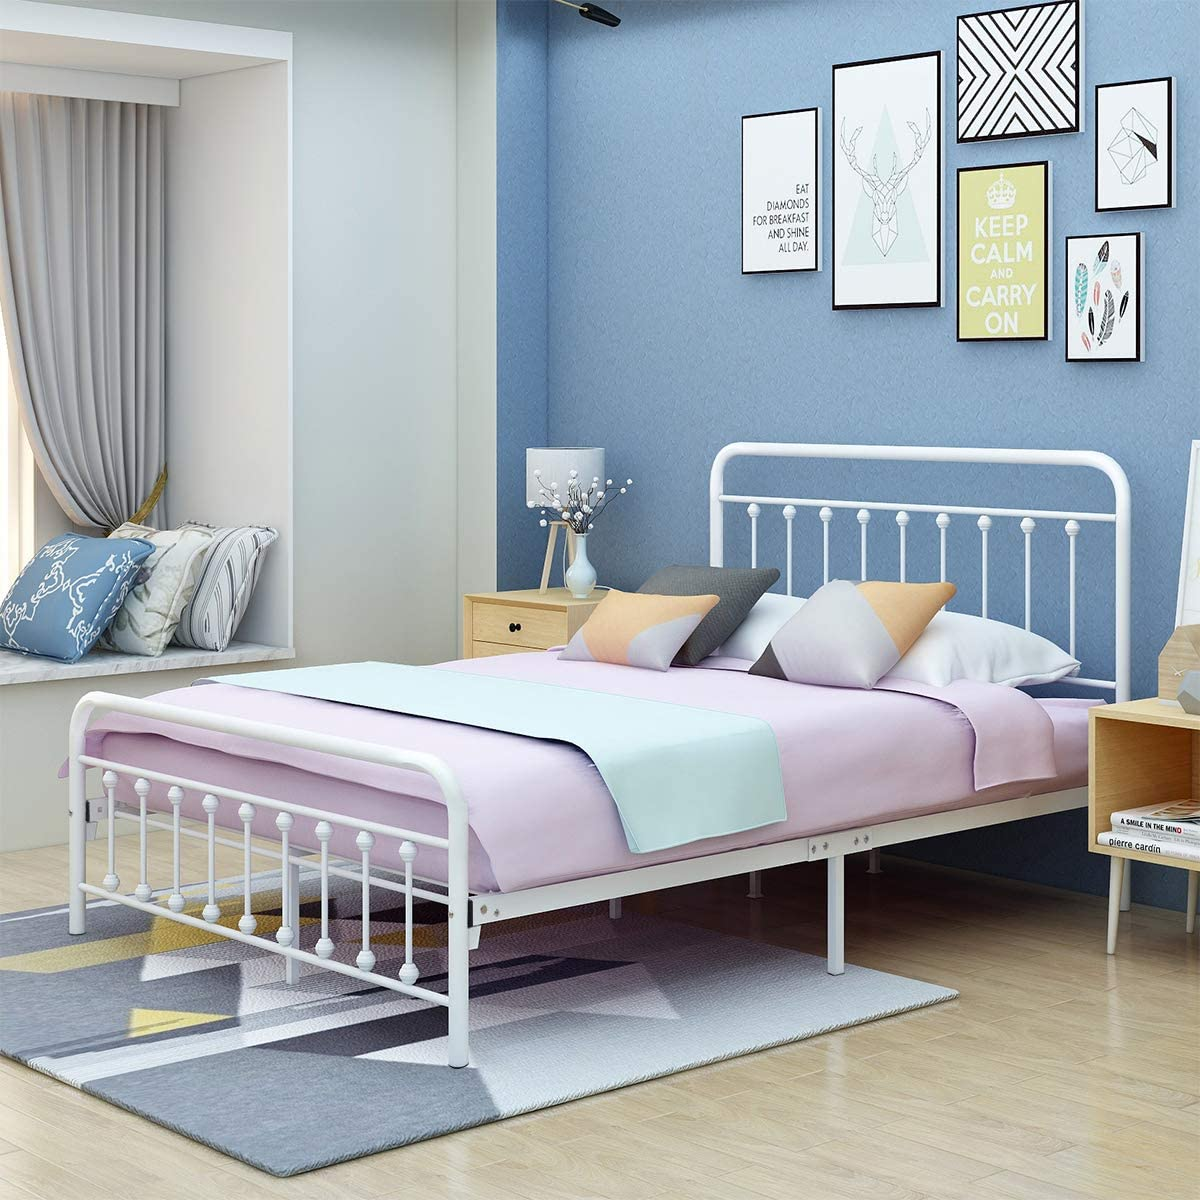 AUFANK Metal Bed Frame Queen Size Victorian Vintage Style Headboard and Footboard No Box Spring Heavy Duty Steel Slat Mattress Foundation White